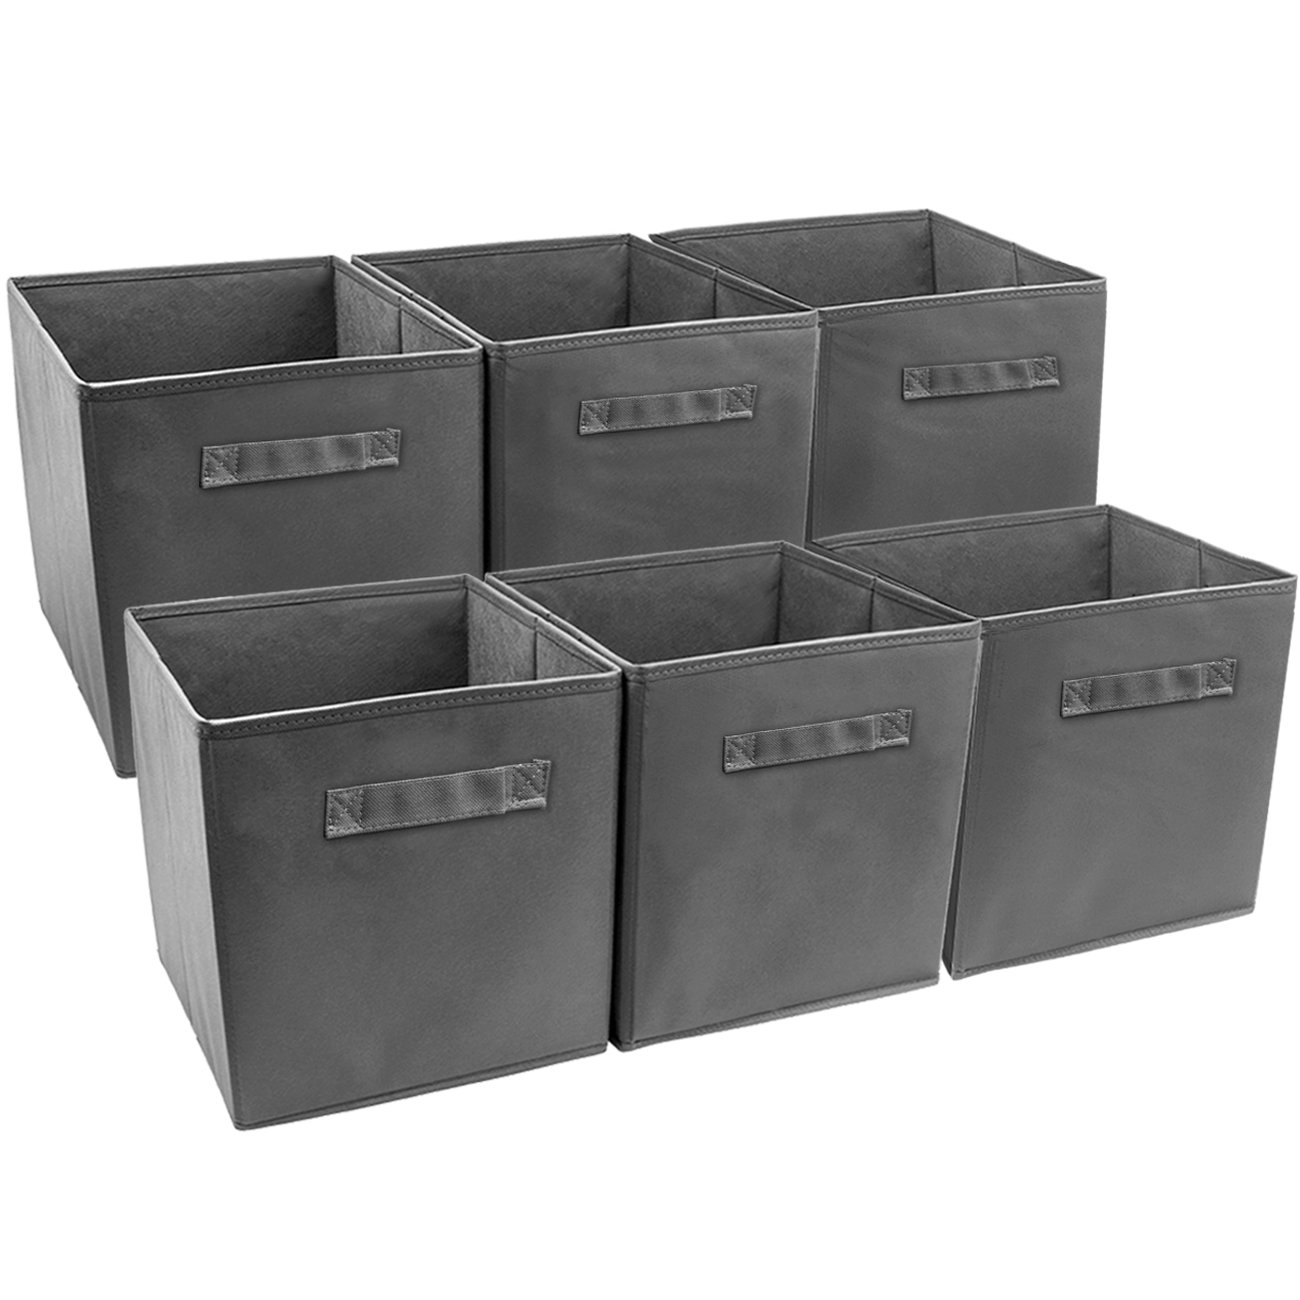 Amazon.com Sorbus Collapsible Storage Bin Grey (Pack of 6) Home u0026 Kitchen  sc 1 st  Amazon.com & Amazon.com: Sorbus Collapsible Storage Bin Grey (Pack of 6): Home ...